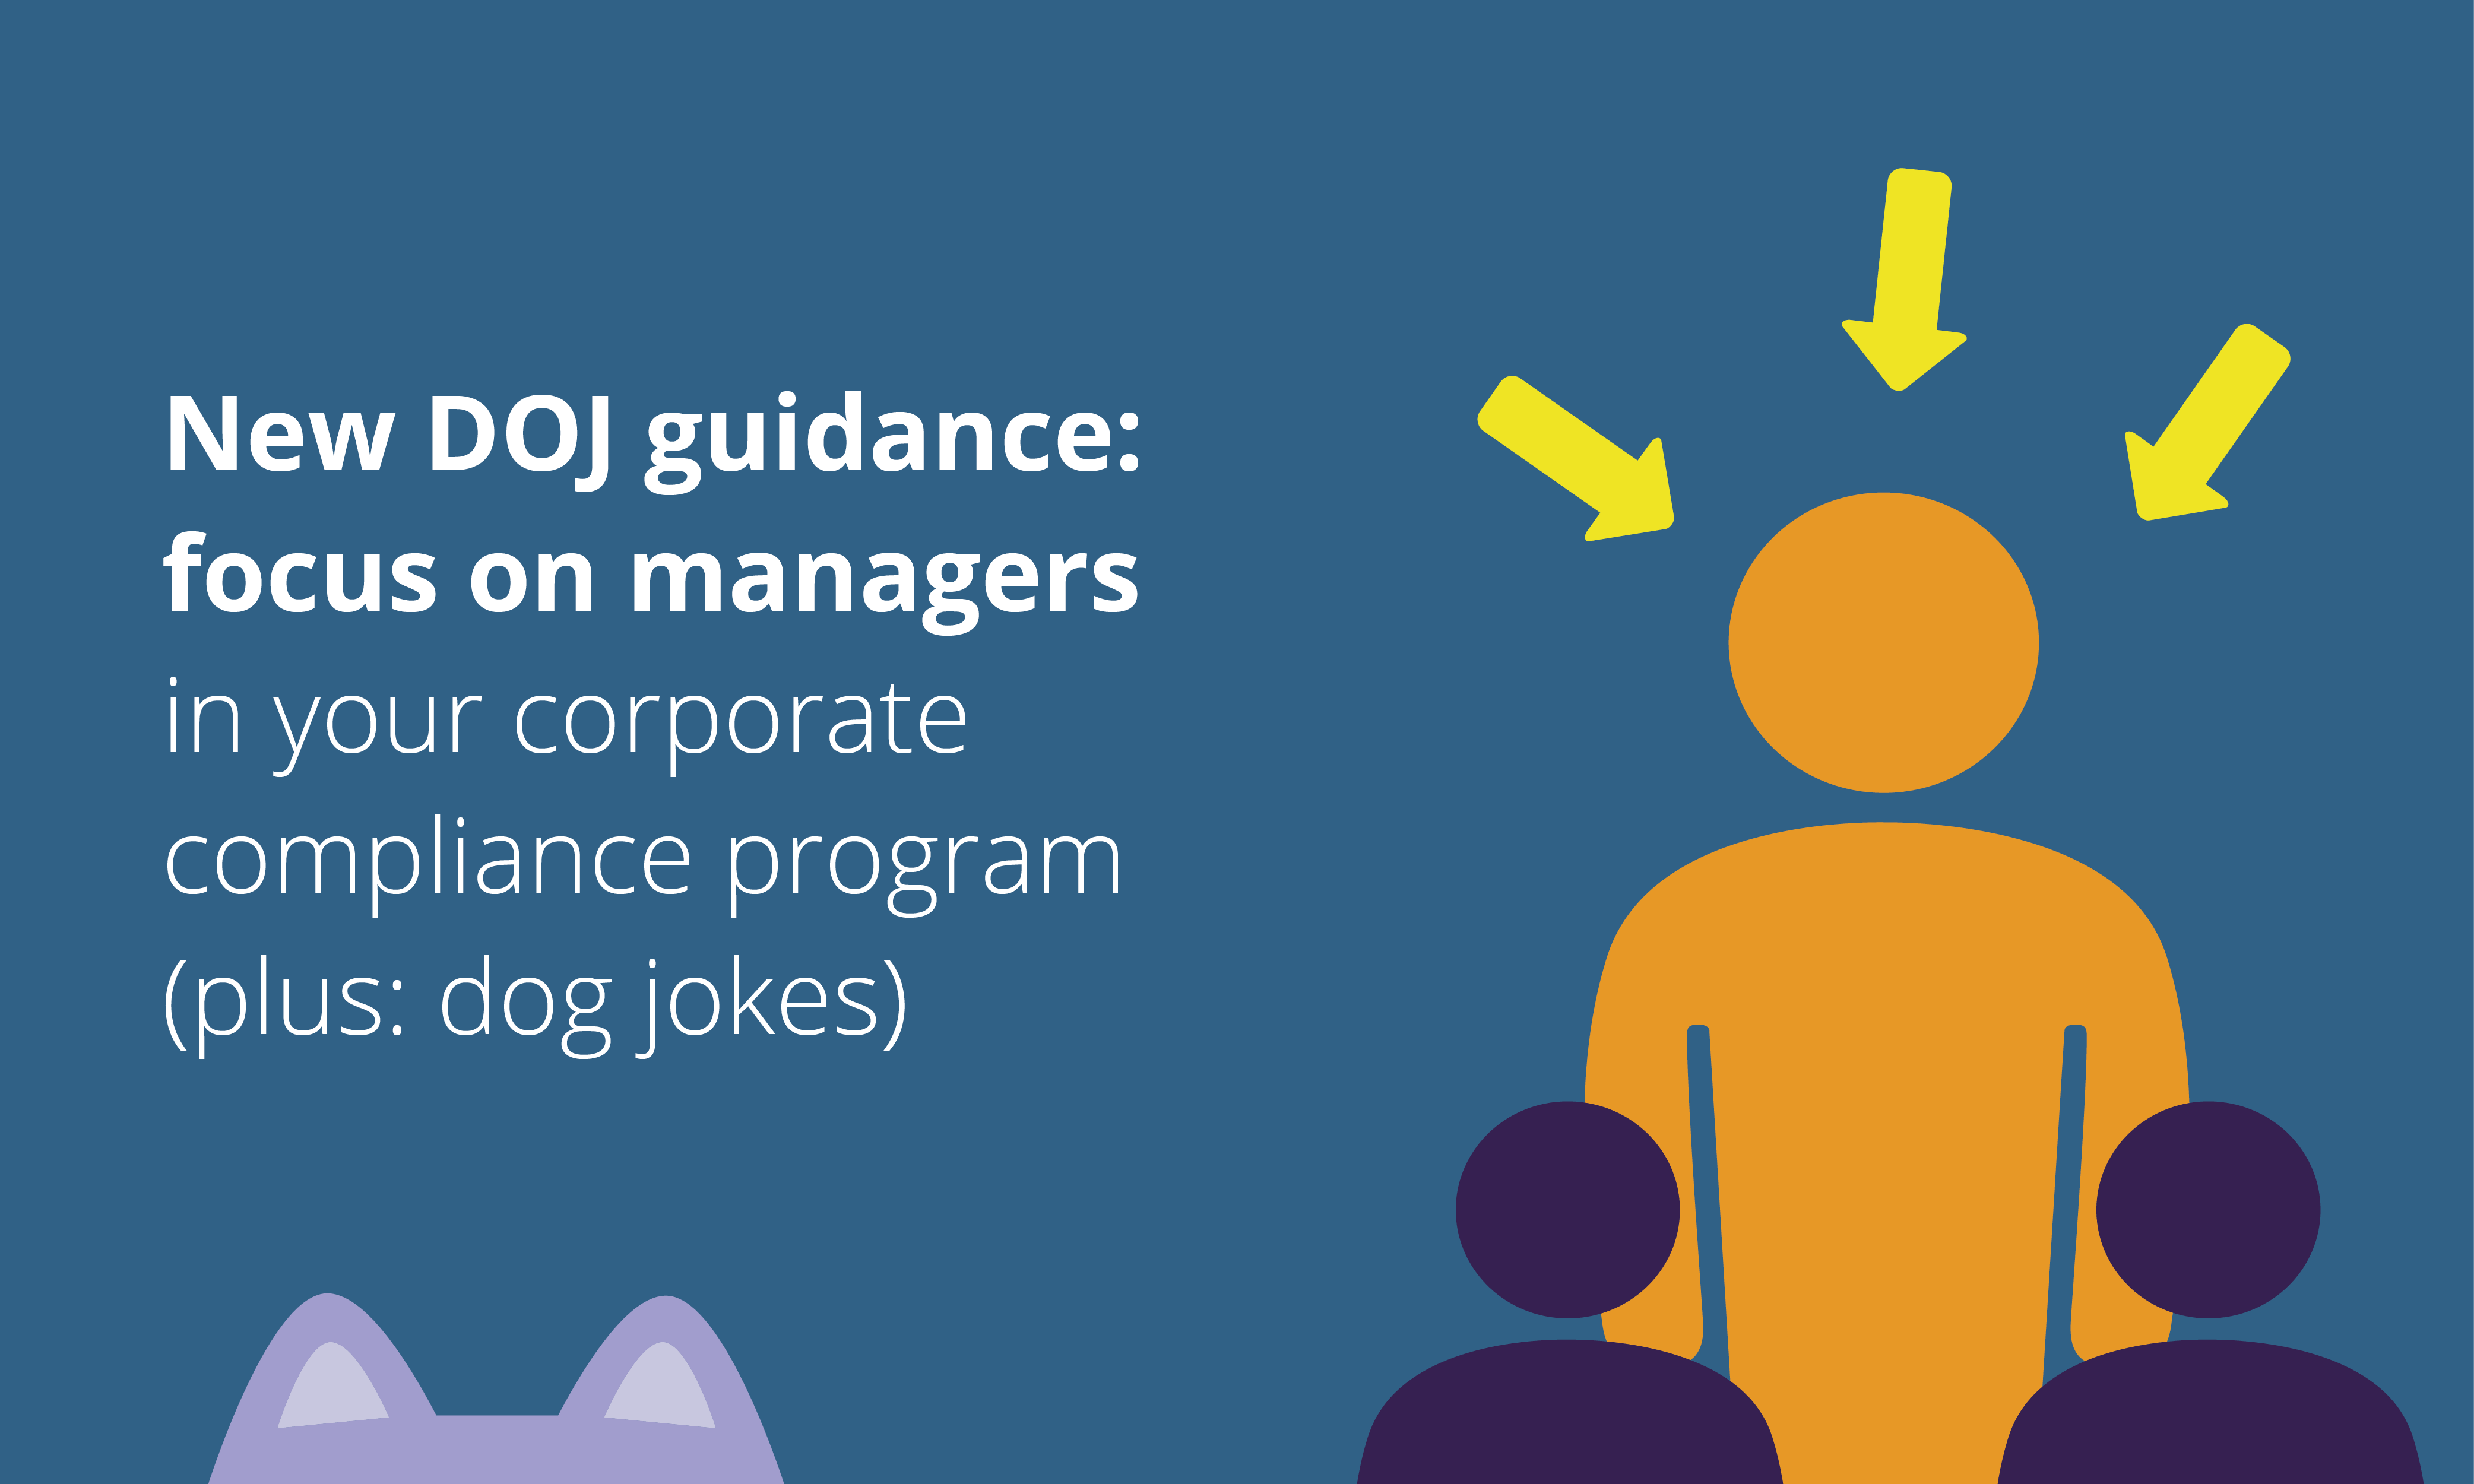 new-doj-guidance-focus-on-managers-in-compliance-plus-dog-jokes